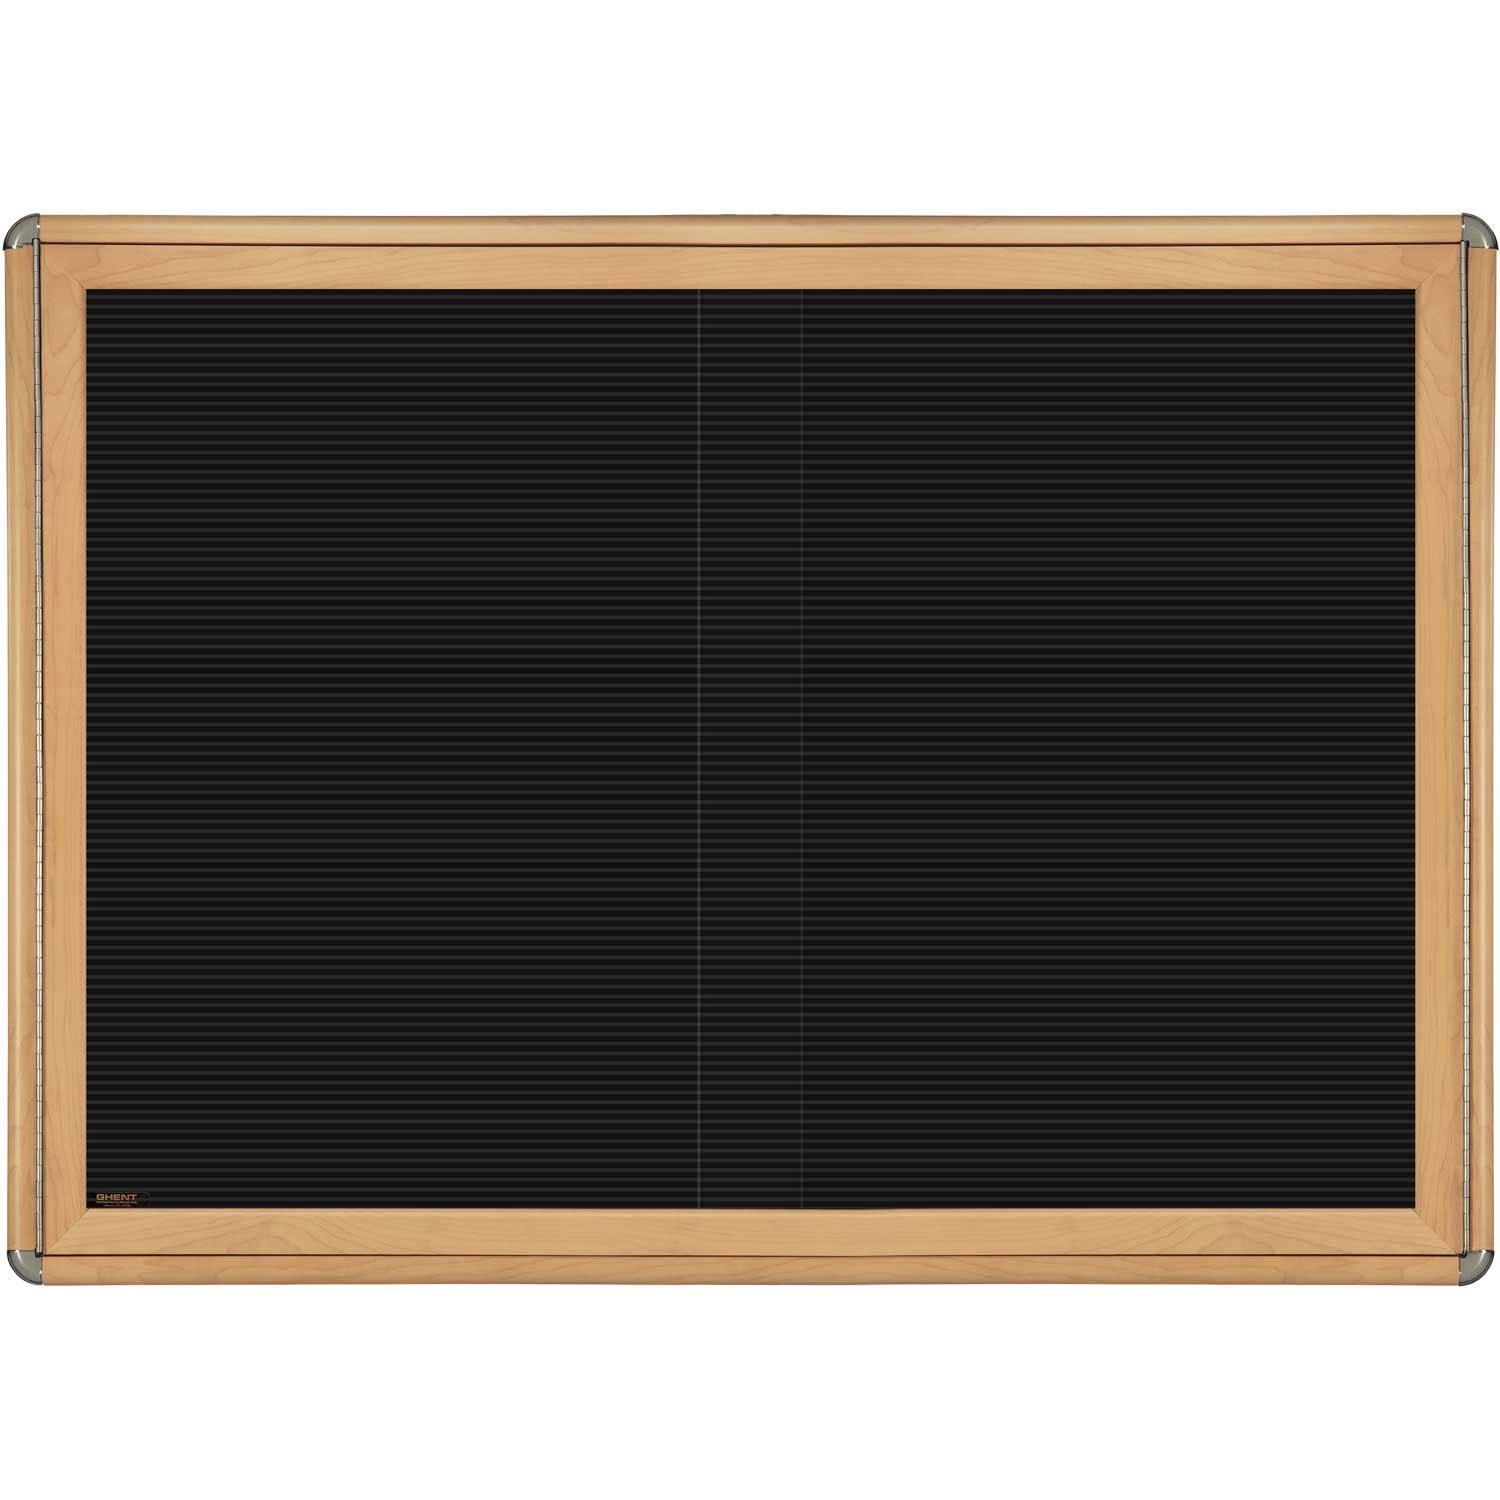 Ovation 2 Sliding Door Wood Look Felt Wall Mounted Letter Board, 3' H x 4' W Frame Finish: Maple, Surface Color: Black, Color: Chrome